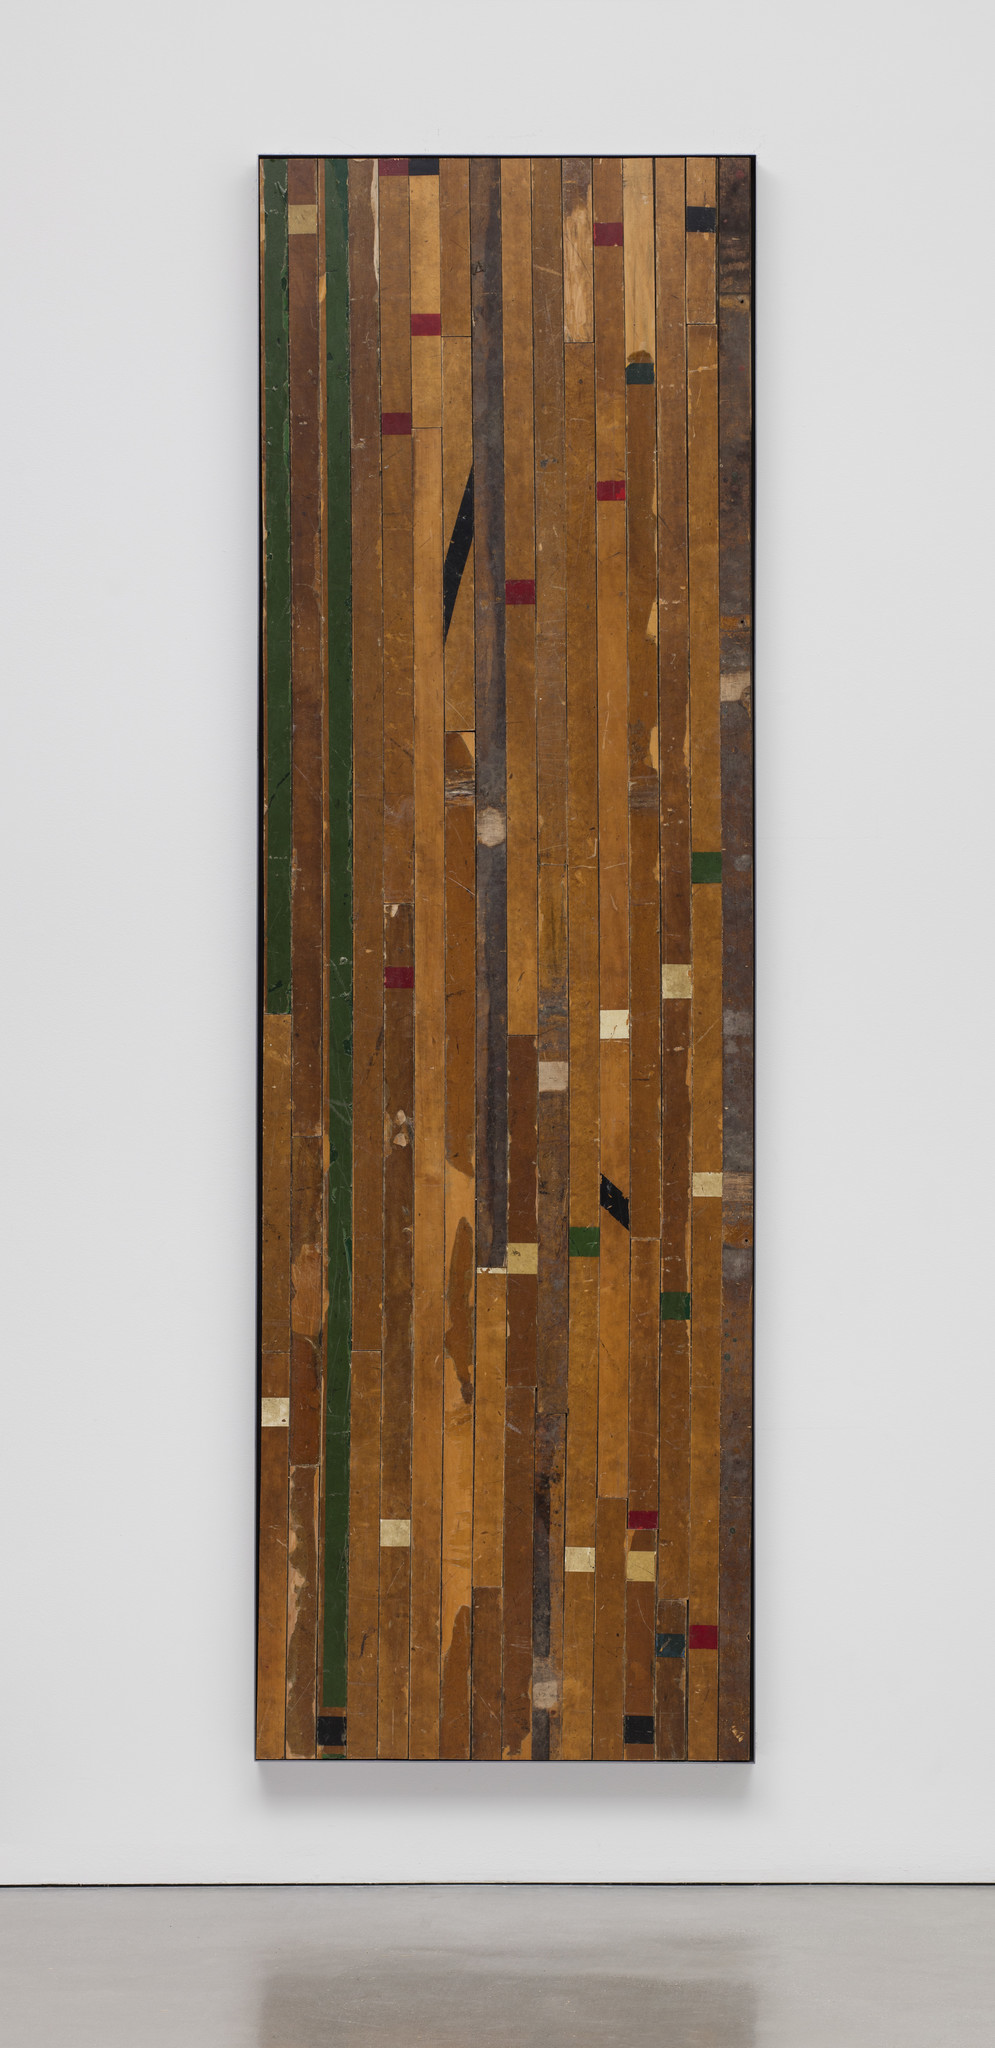 "Theaster Gates' ""Ground rules. Green scrimmage 2,"" 2015, wooden flooring, framed dimensions 120 1/4 inches by 37 3/8 inches by 2 7/8 inches."